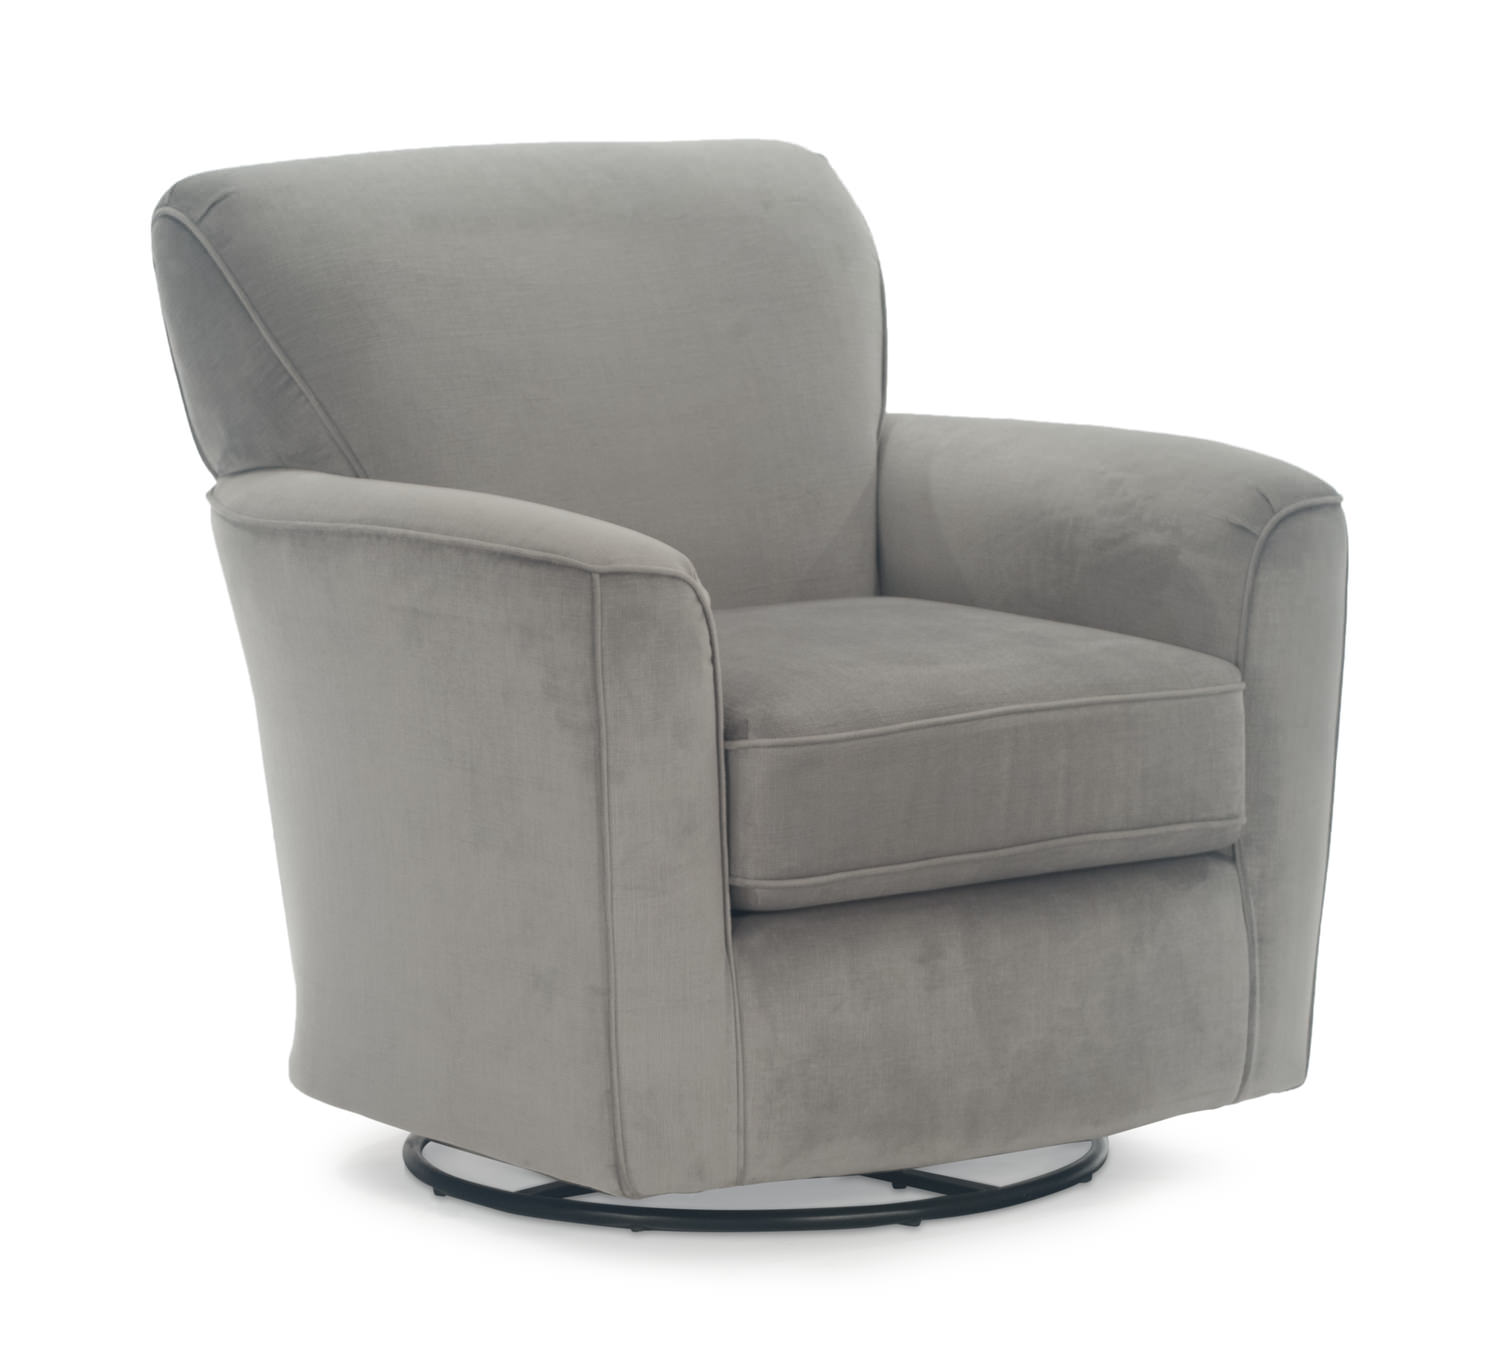 Outstanding Kaylee Swivel Glider Creativecarmelina Interior Chair Design Creativecarmelinacom